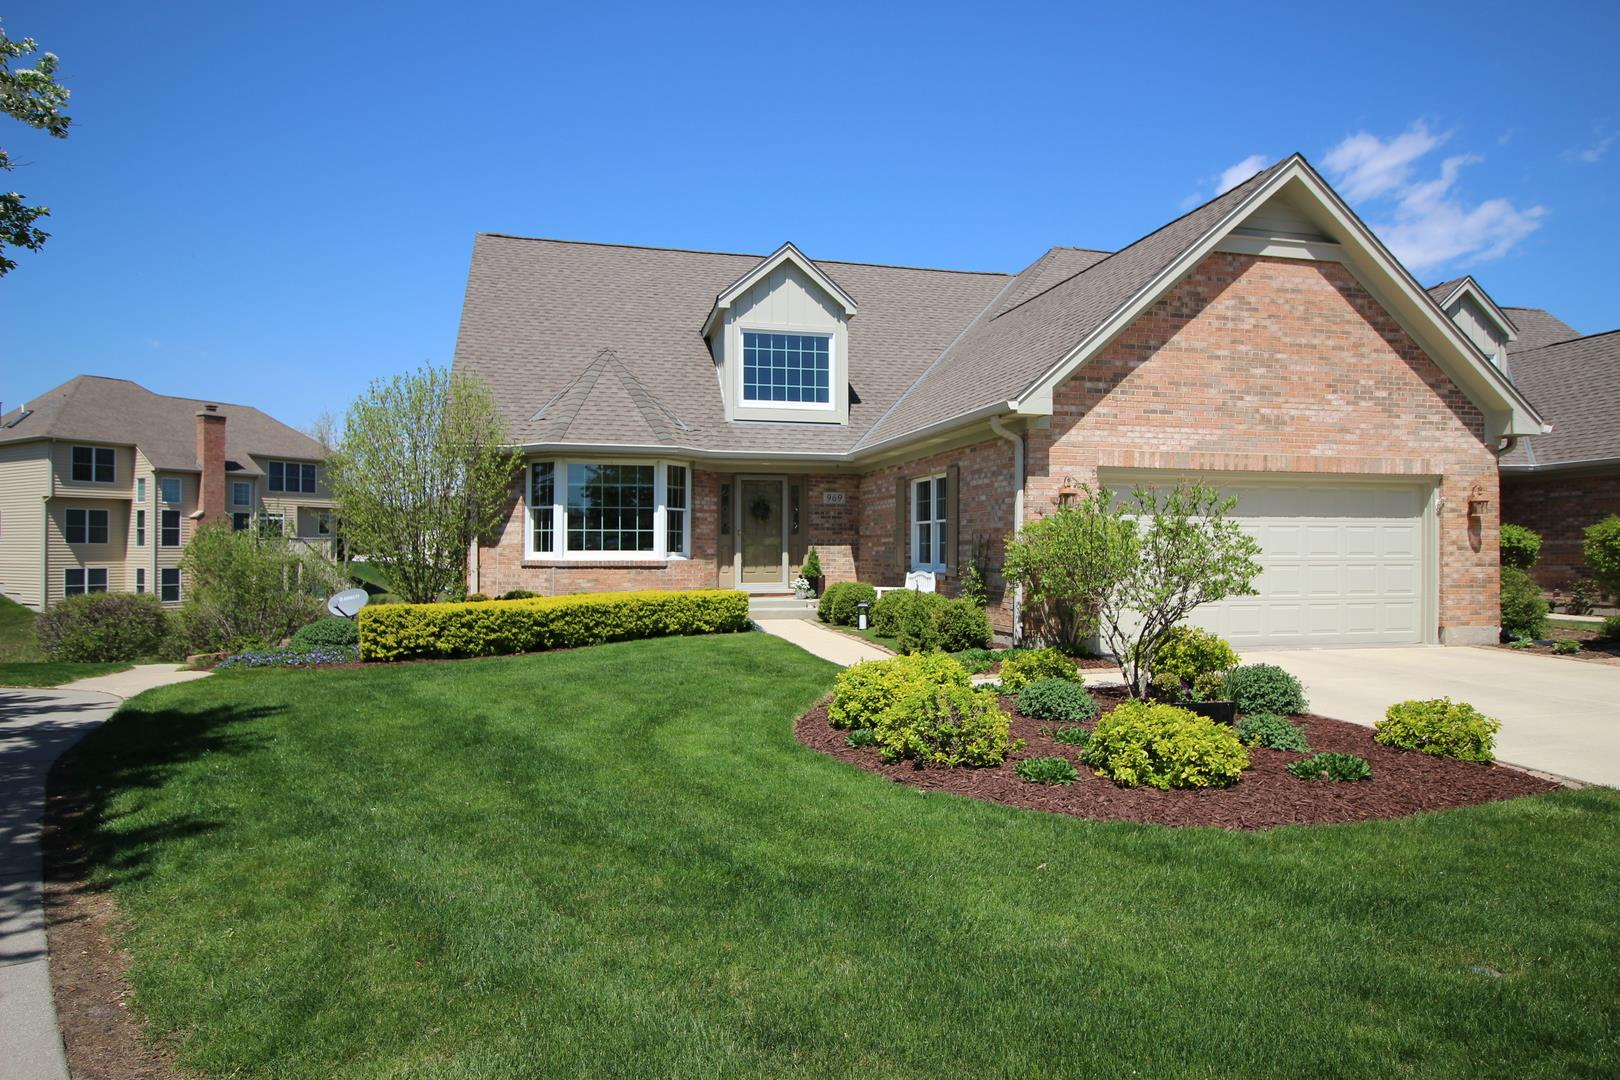 969 Plantain Court, Crystal Lake, IL 60014 - #: 10985235